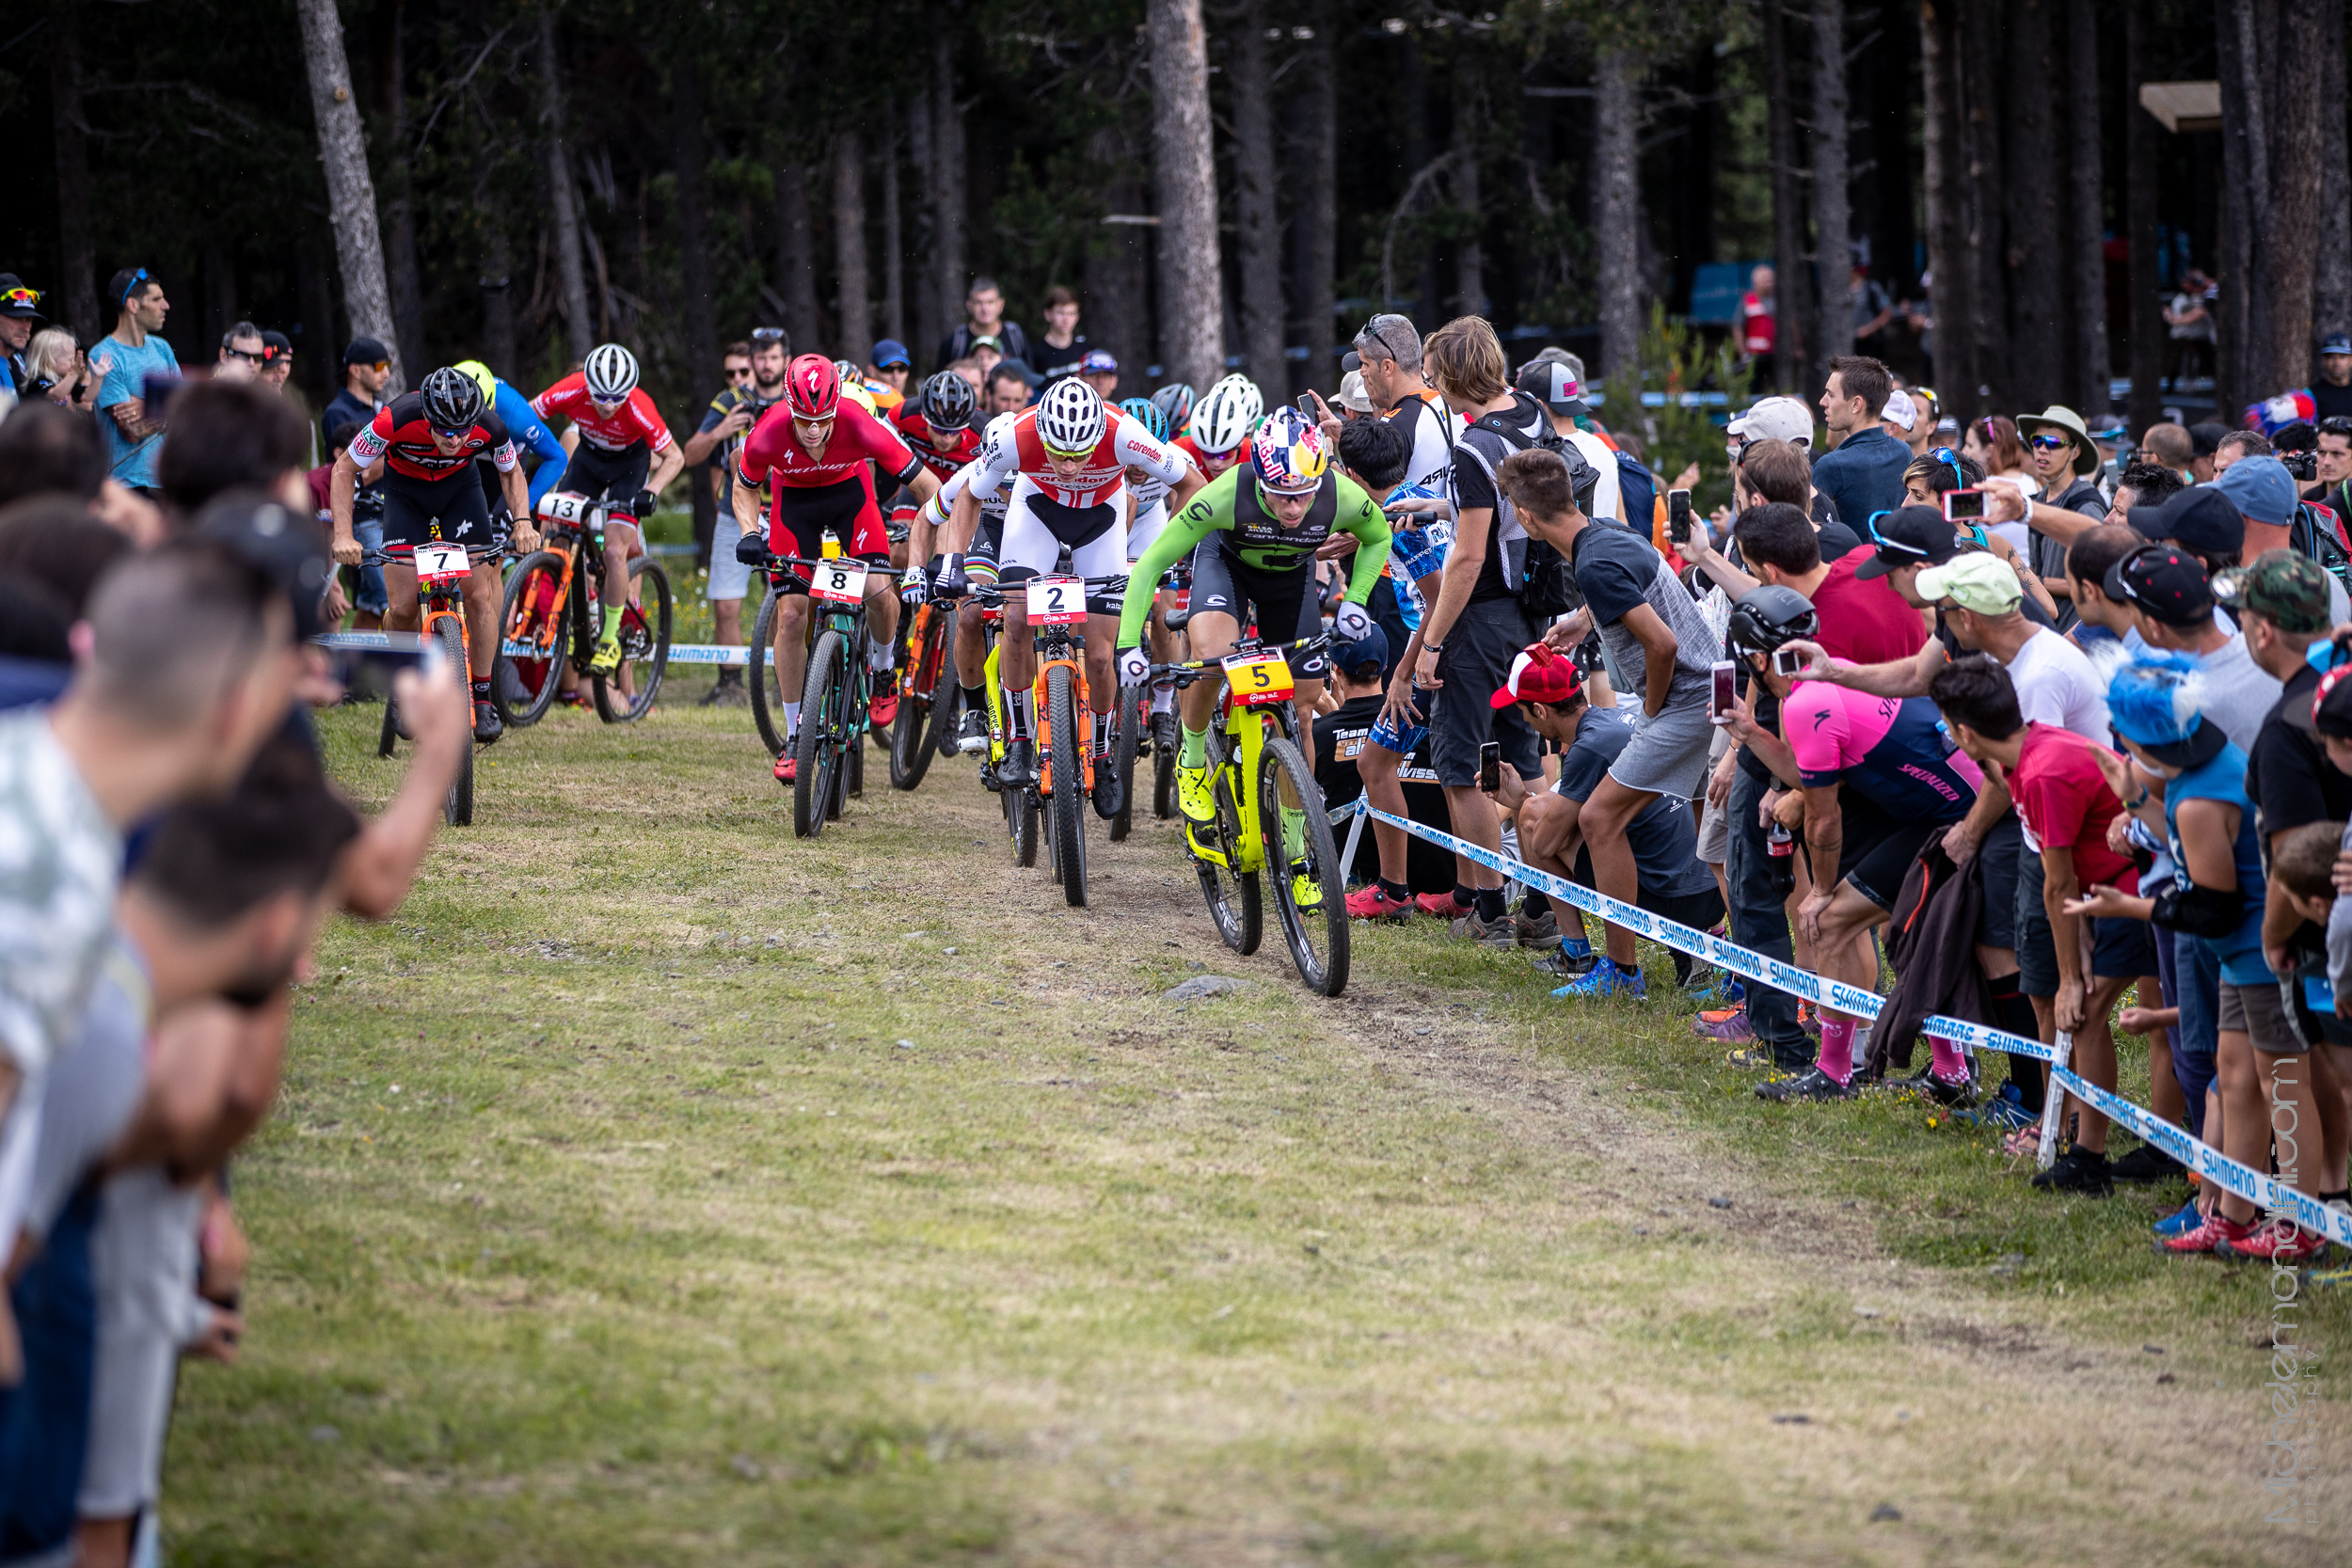 The peloton after the start leaded by Avancini - Ph: Michele Mondini